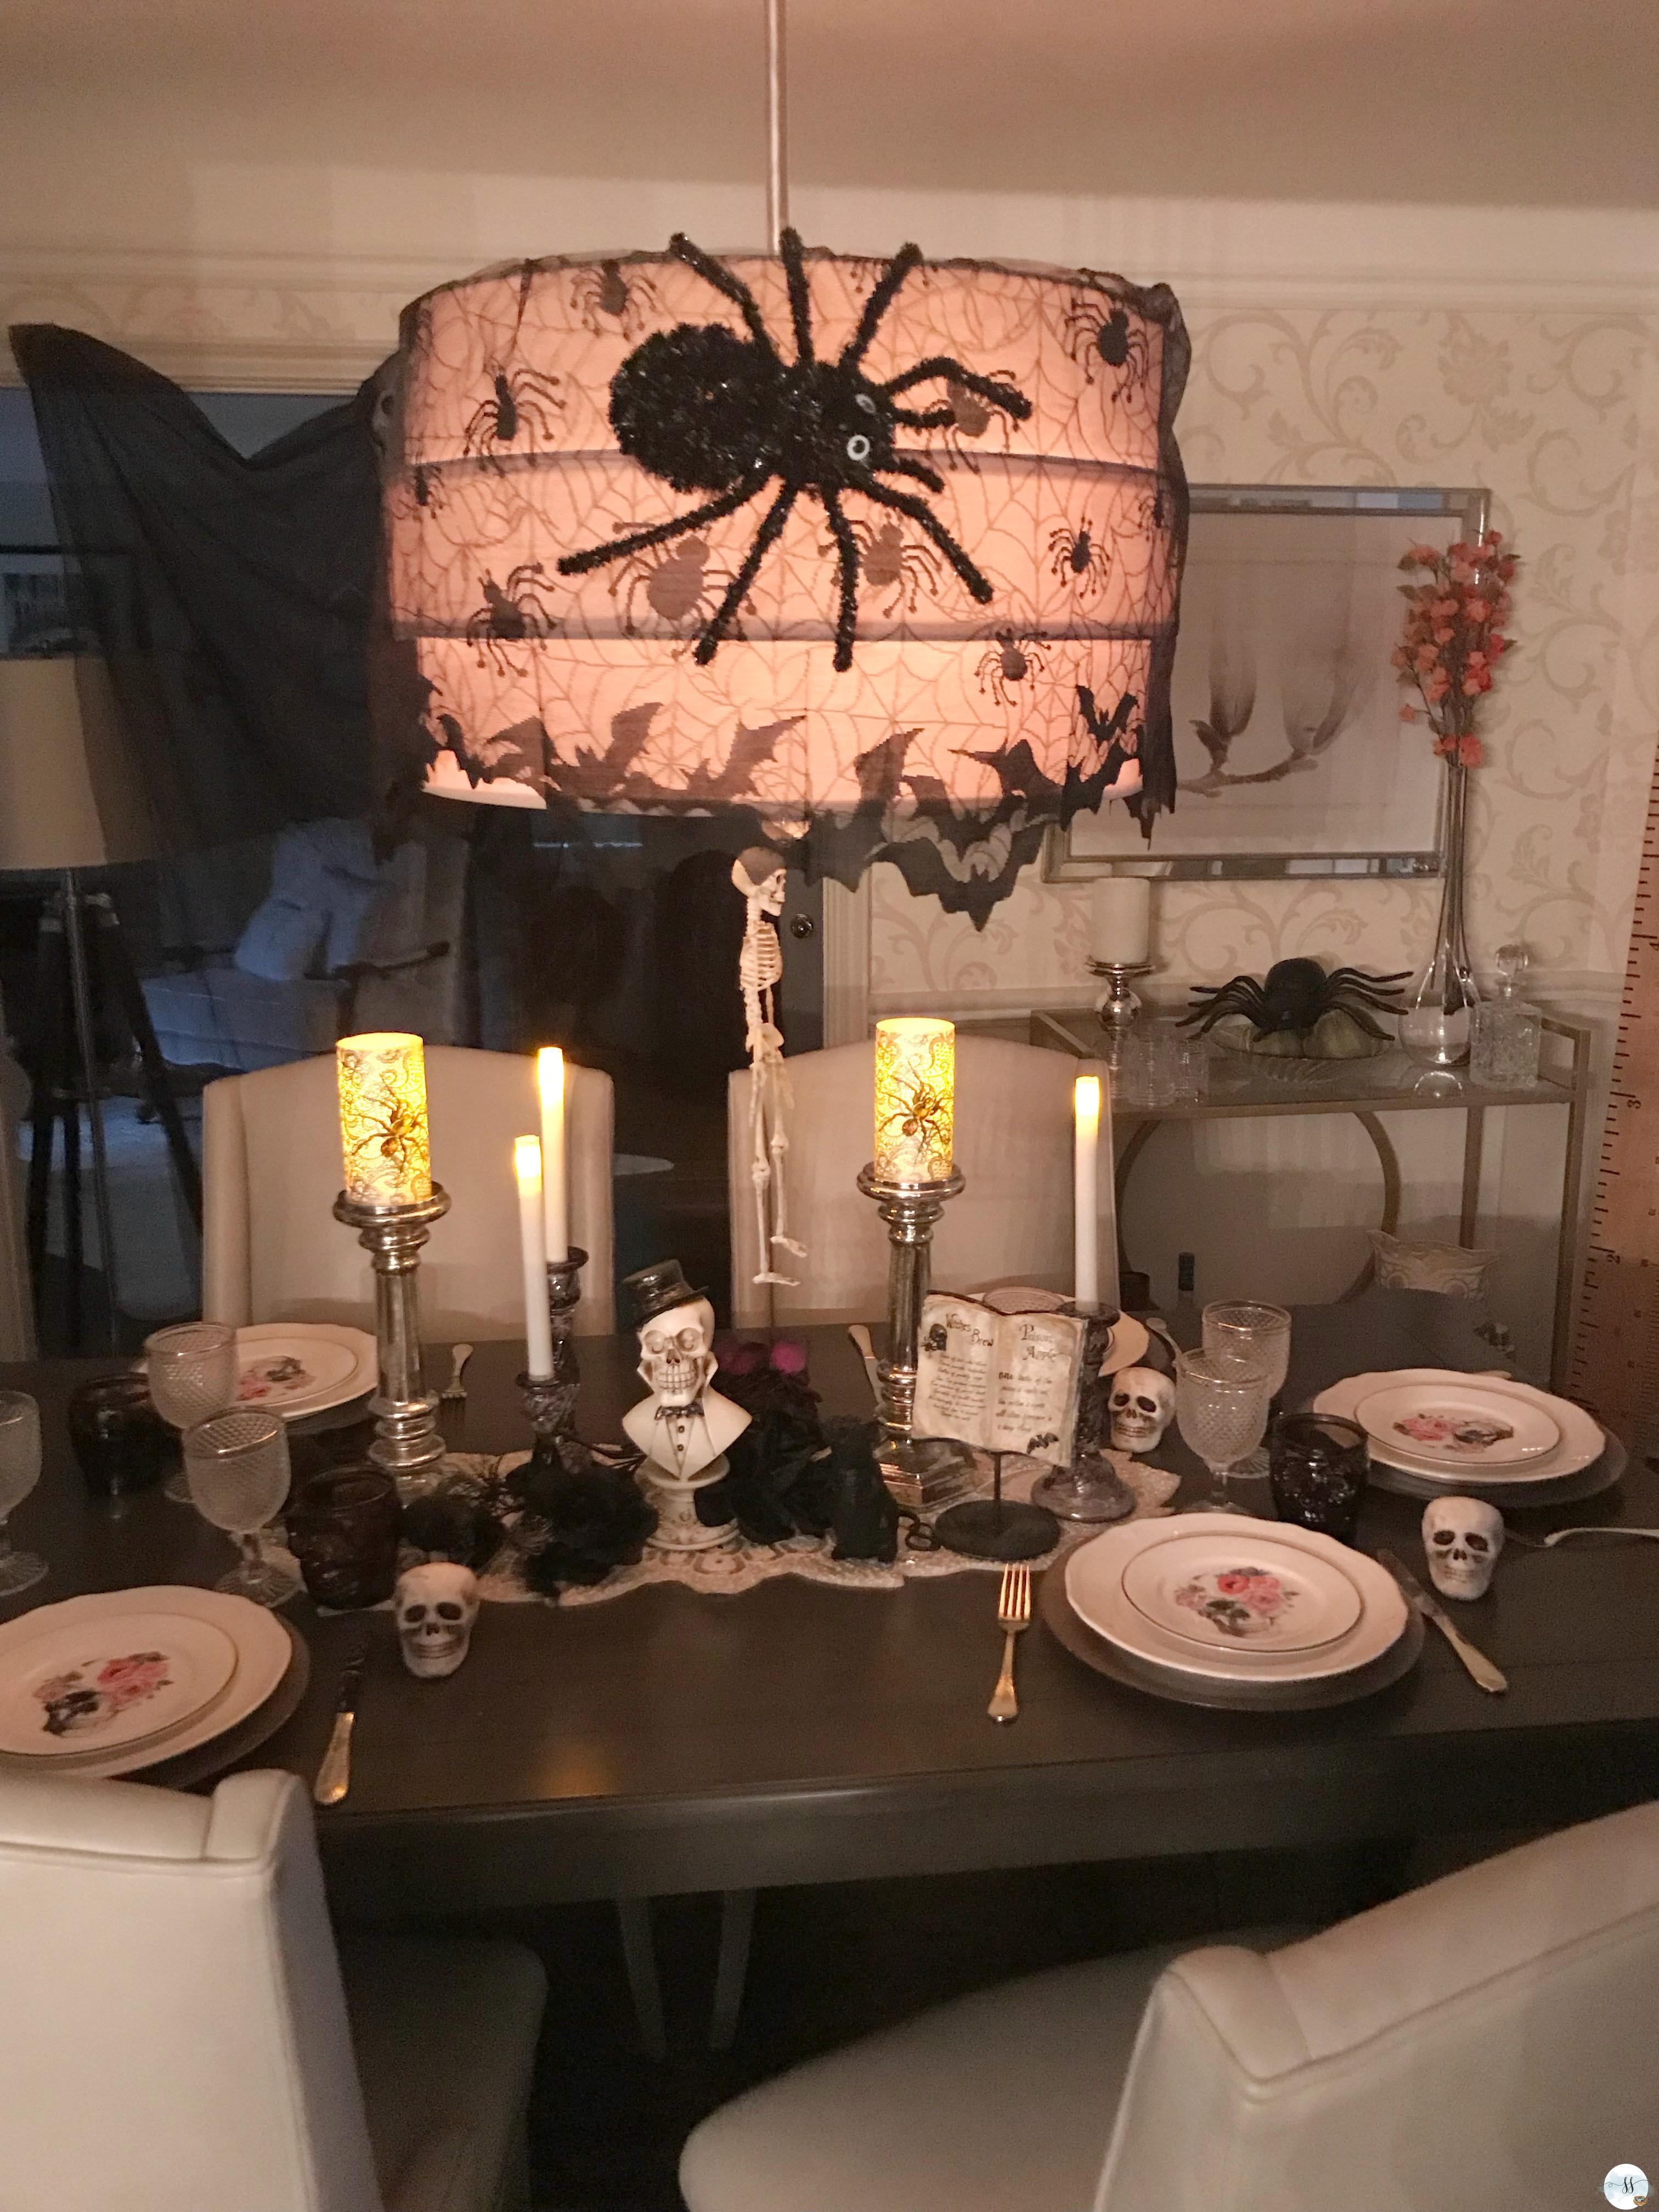 Halloween table scape, with skulls and spooky spiders